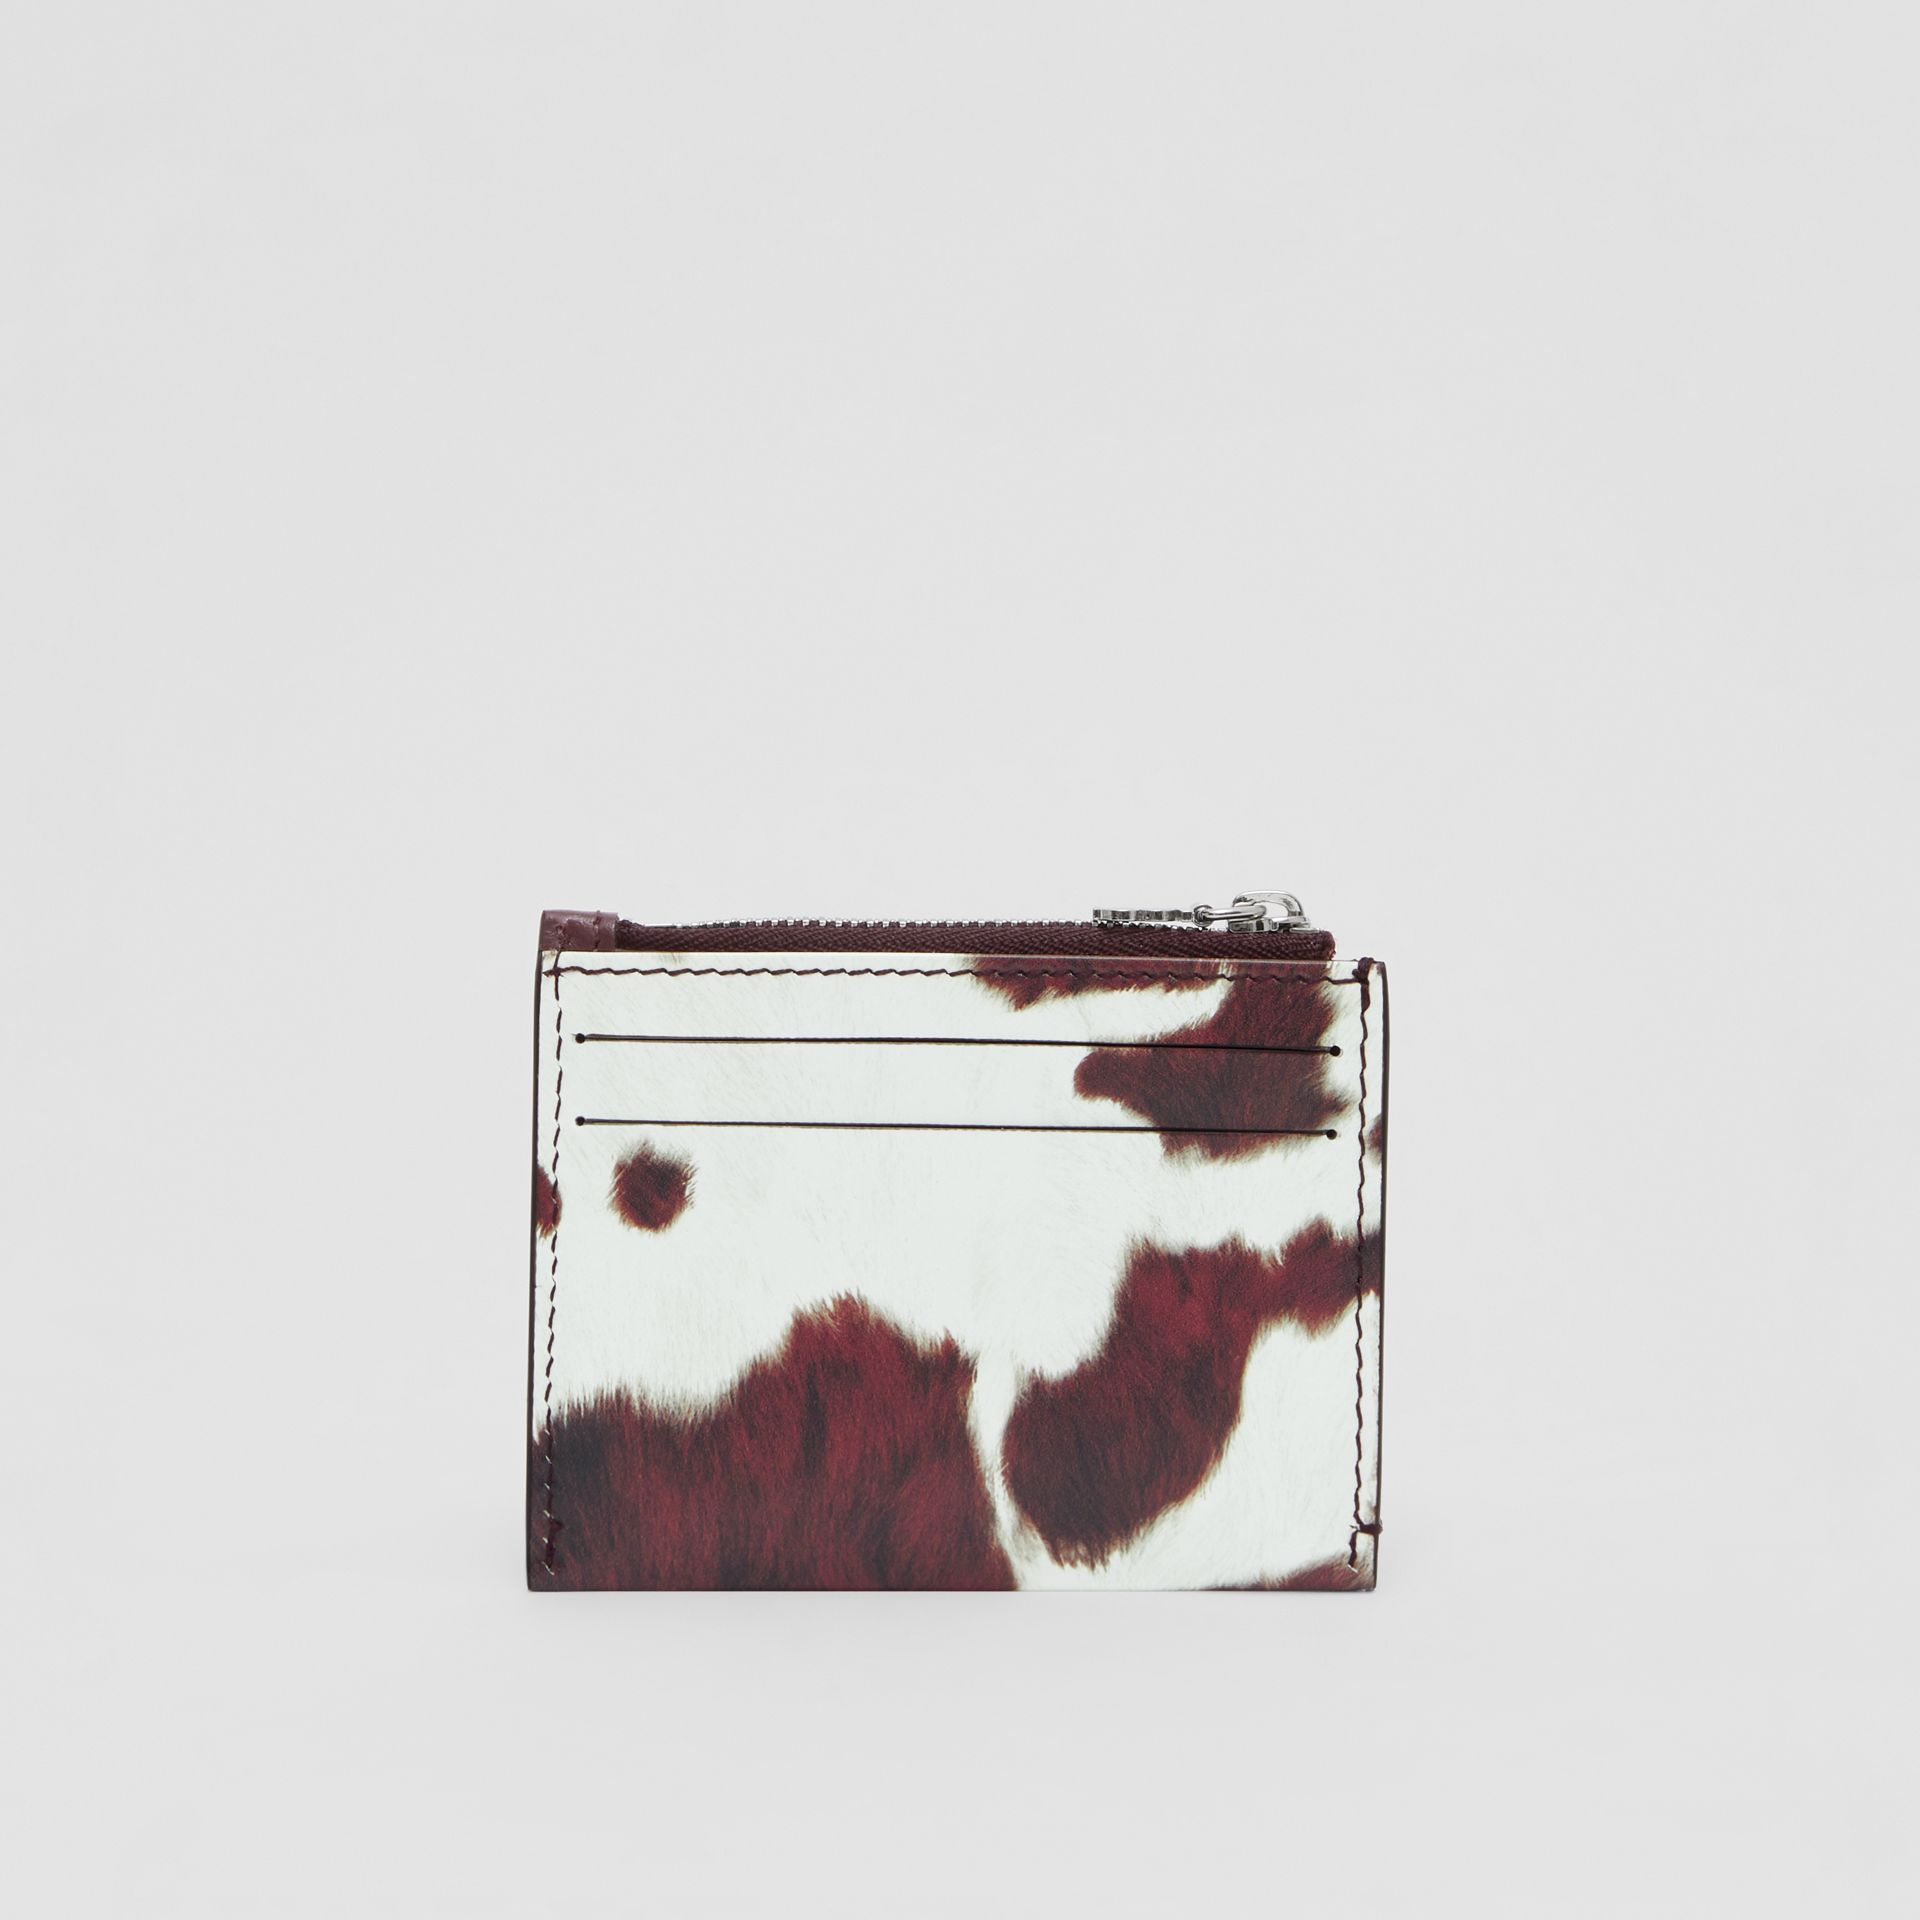 Cow Print Leather Zip Card Case in Mahogany - Women | Burberry Australia - gallery image 5